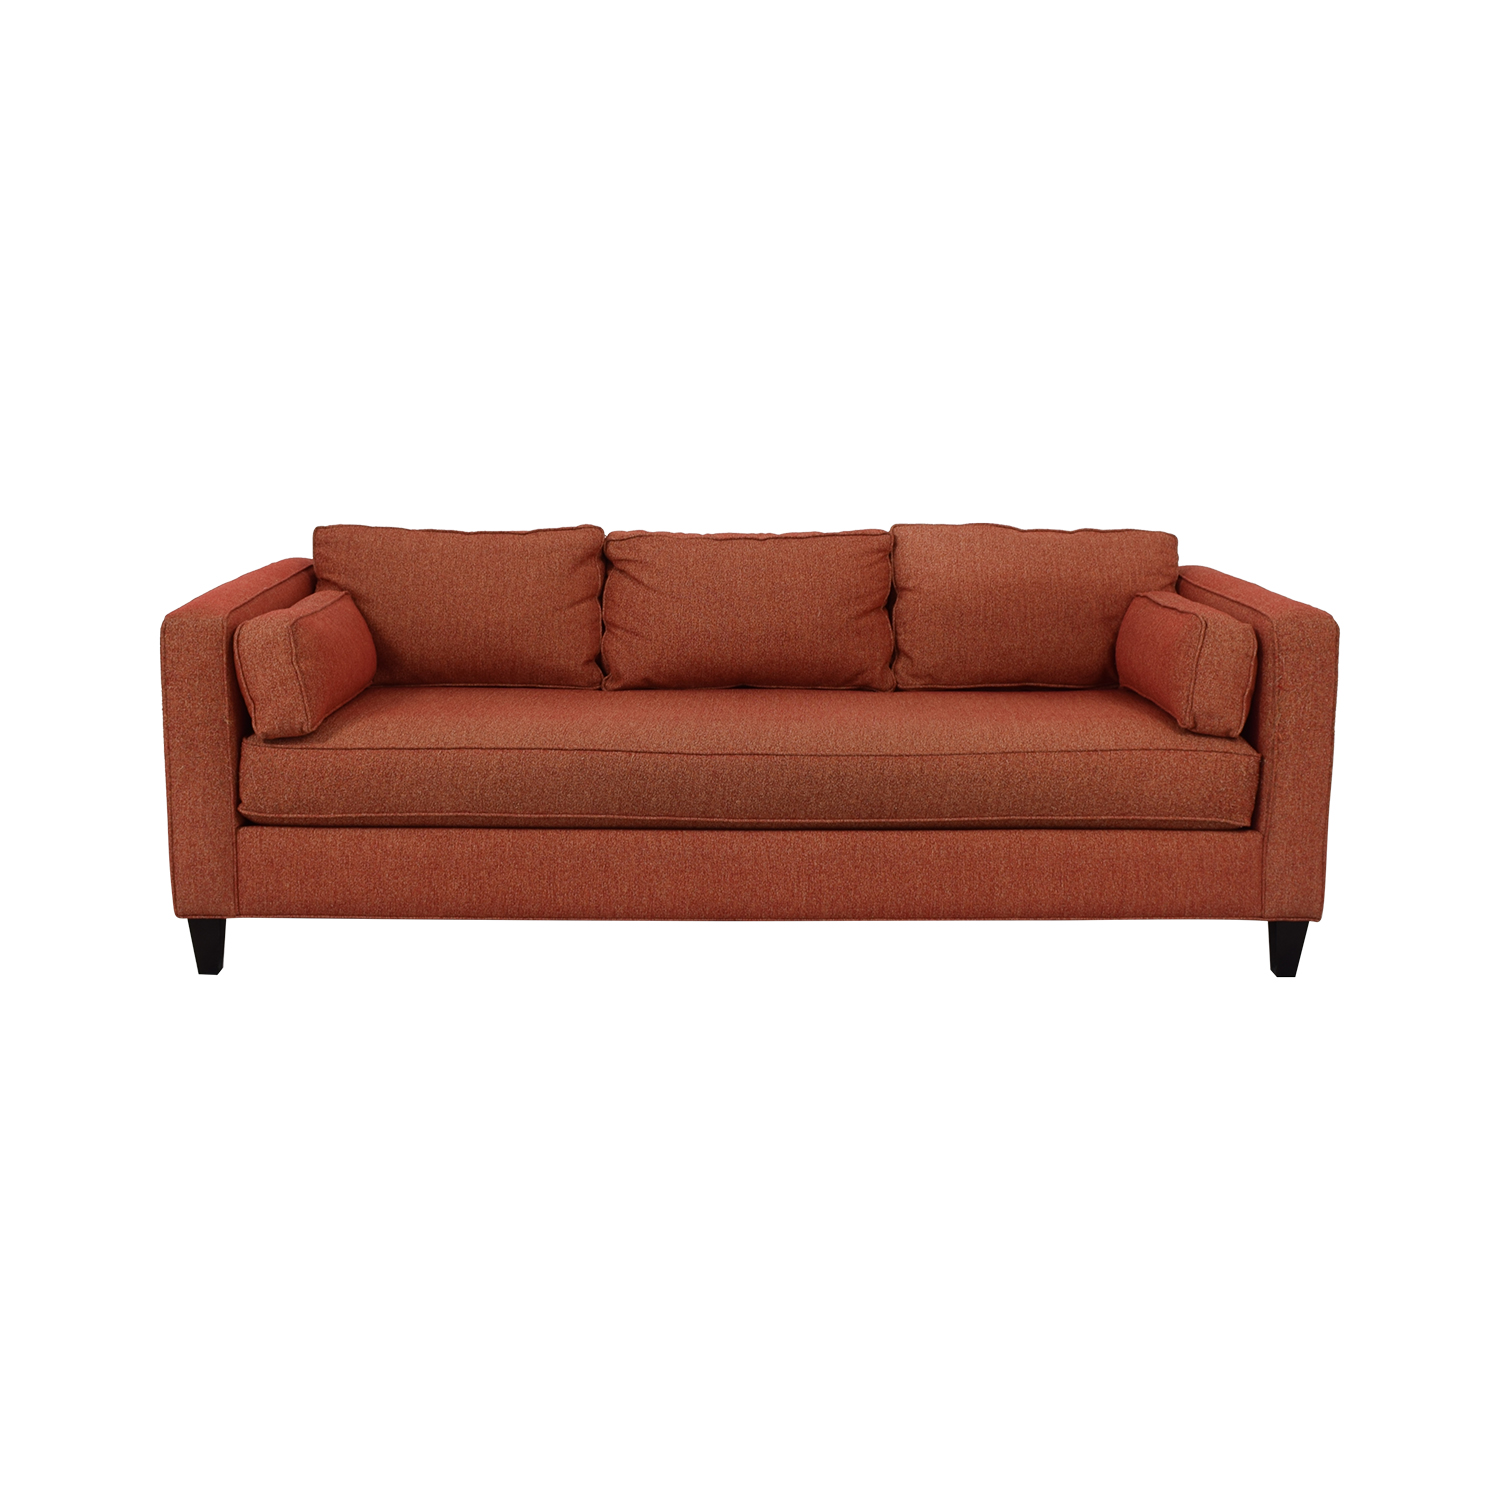 Younger Furniture Younger Furniture Single Cushion Sofa red